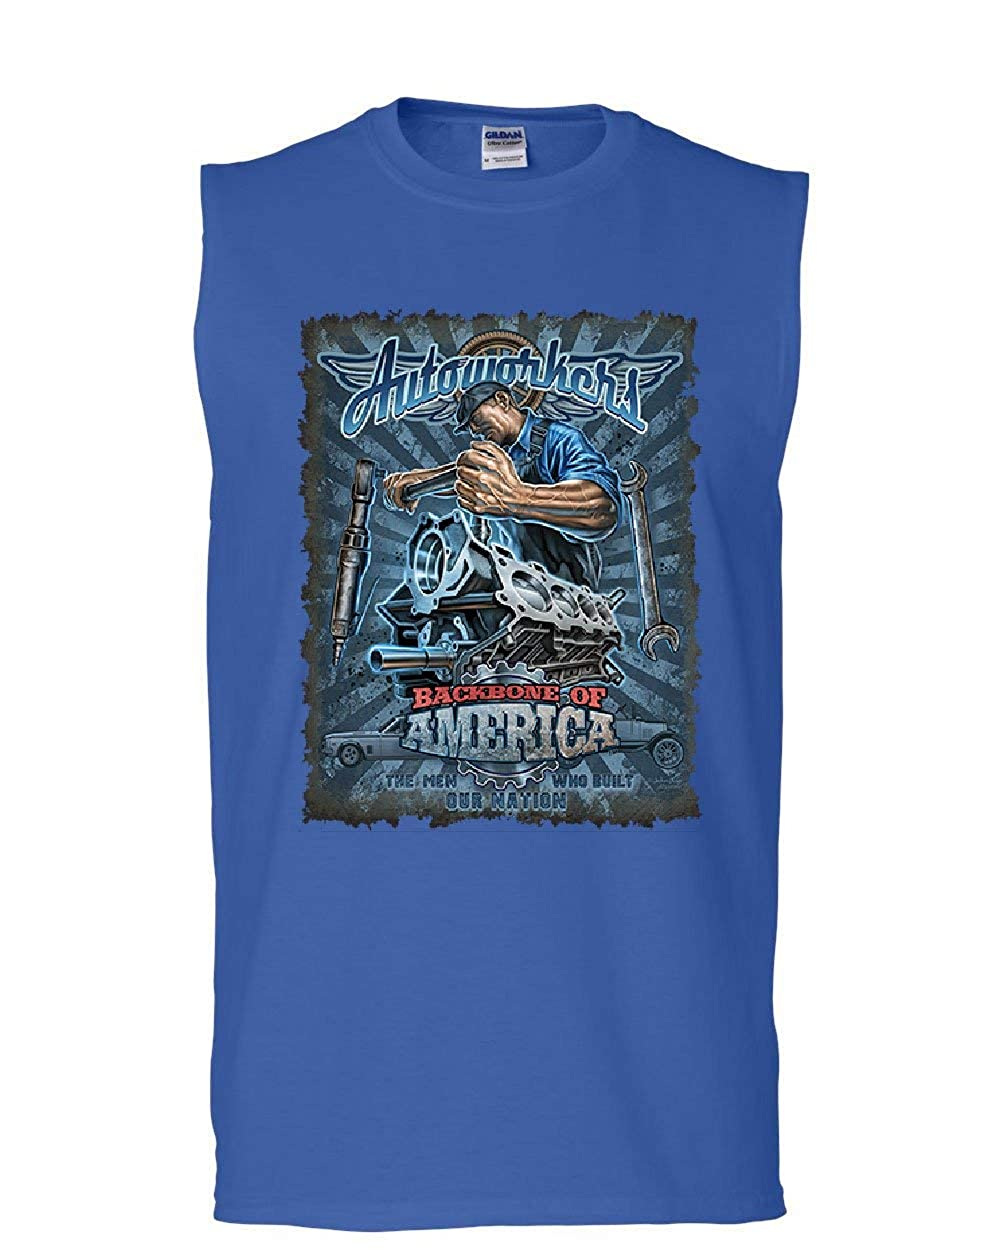 Autoworkers Backbone of America Muscle Shirt Car Motor Mechanic Union Sleeveless